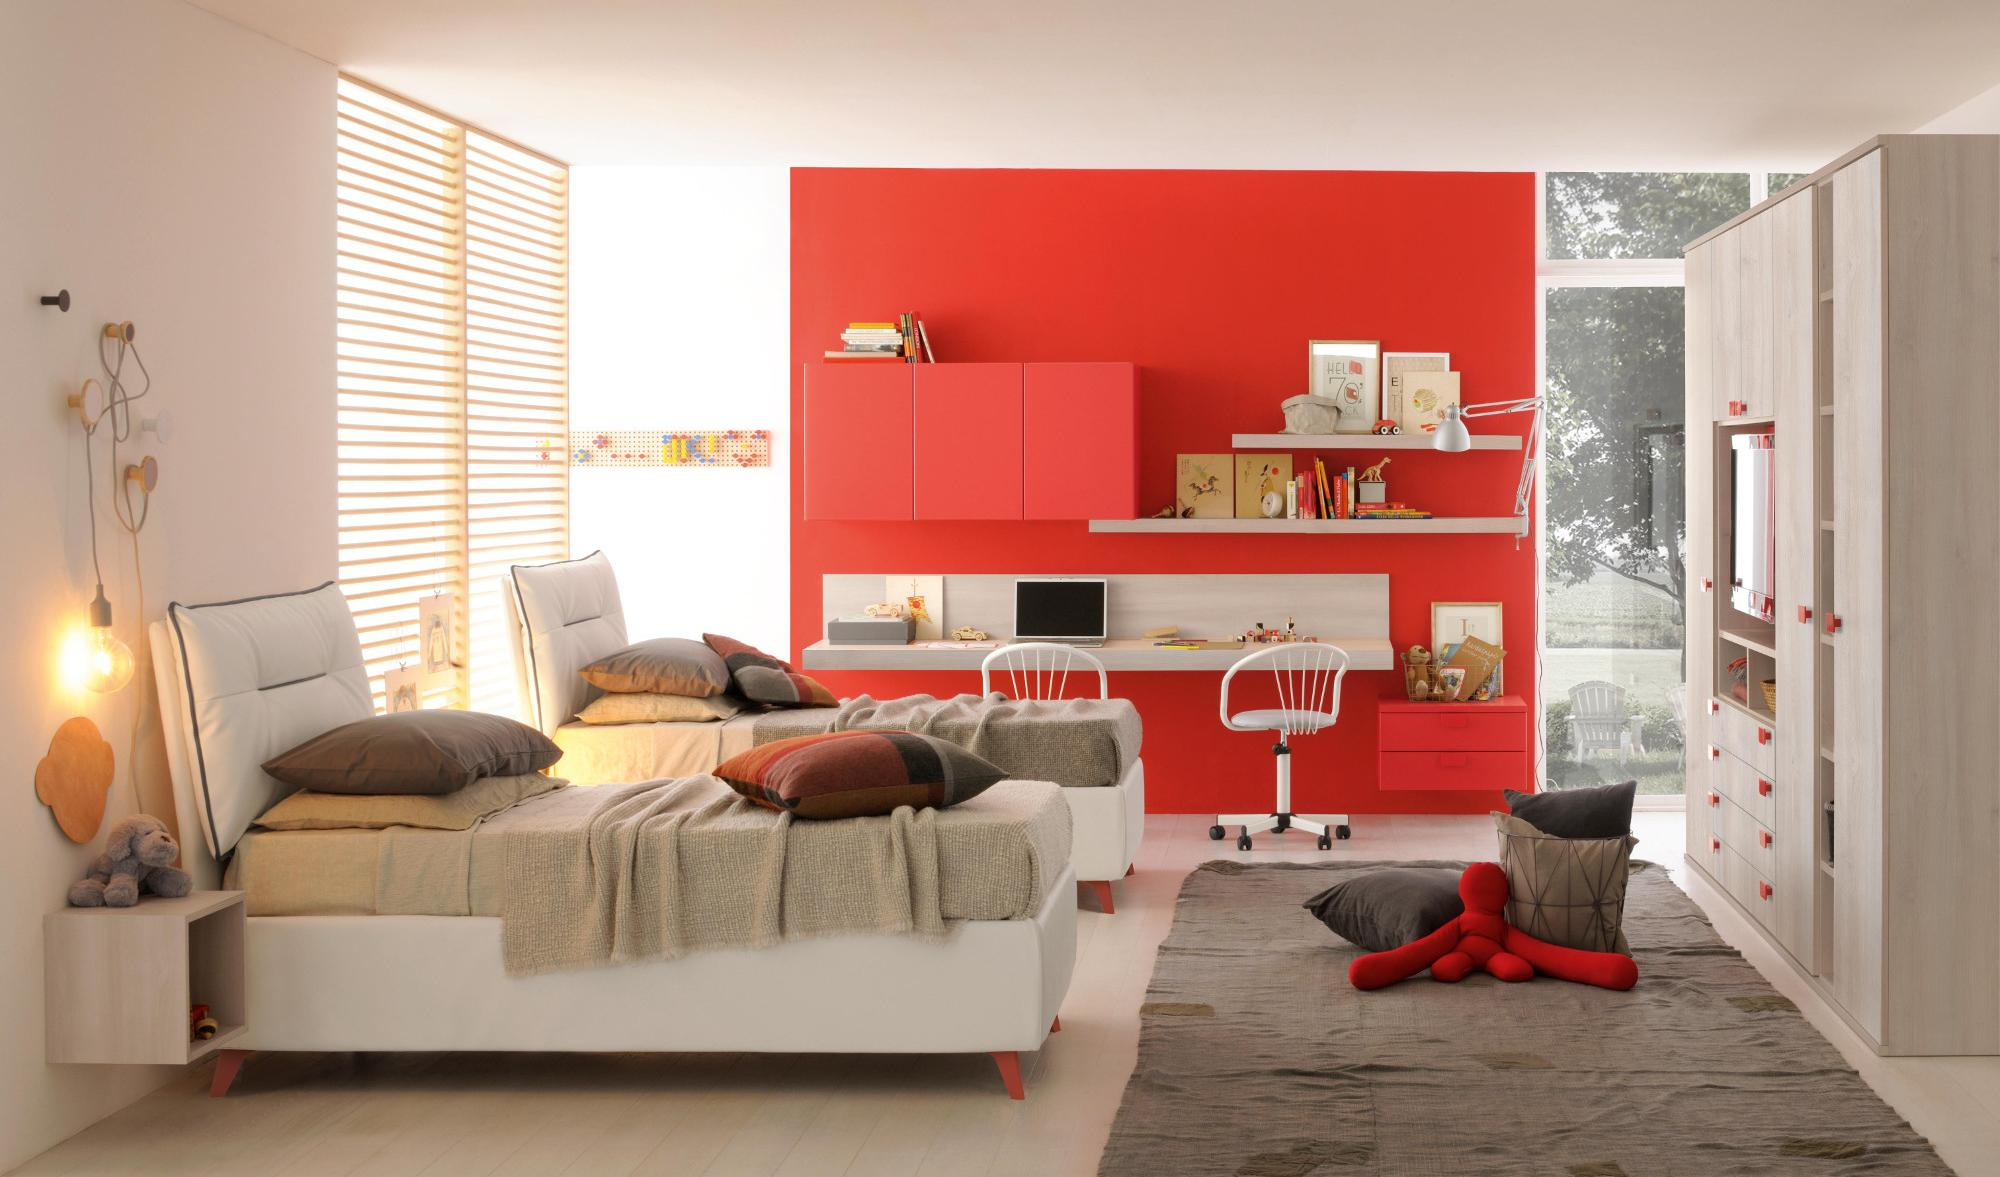 GOLF CAMERETTE ROSSO